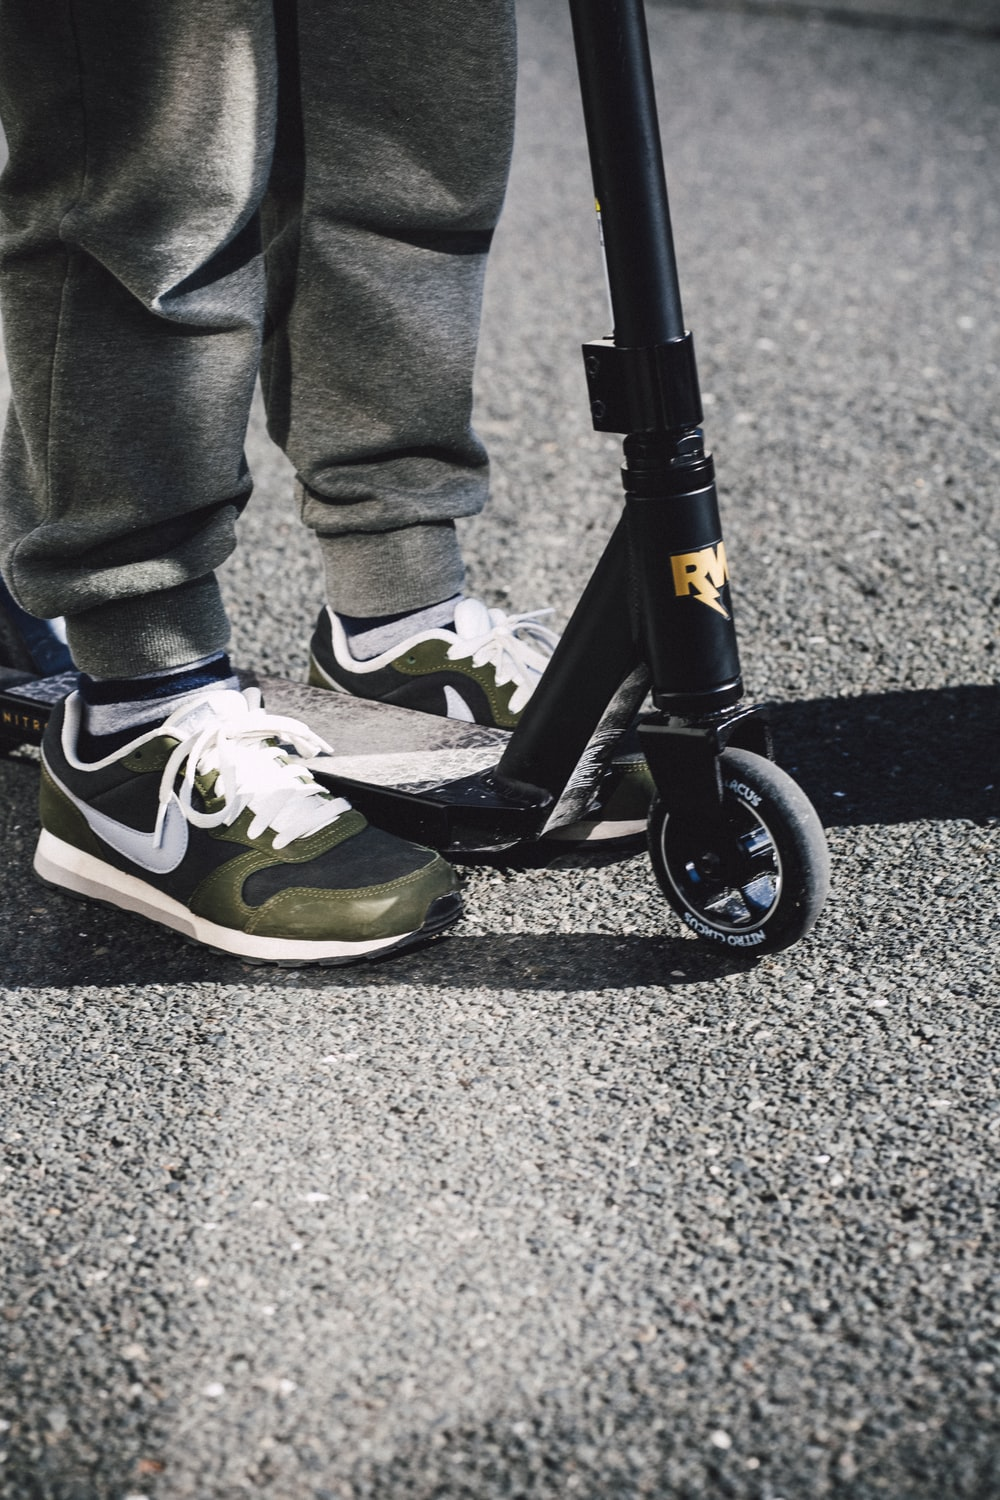 person in blue denim jeans and yellow and black nike sneakers riding black and white bicycle